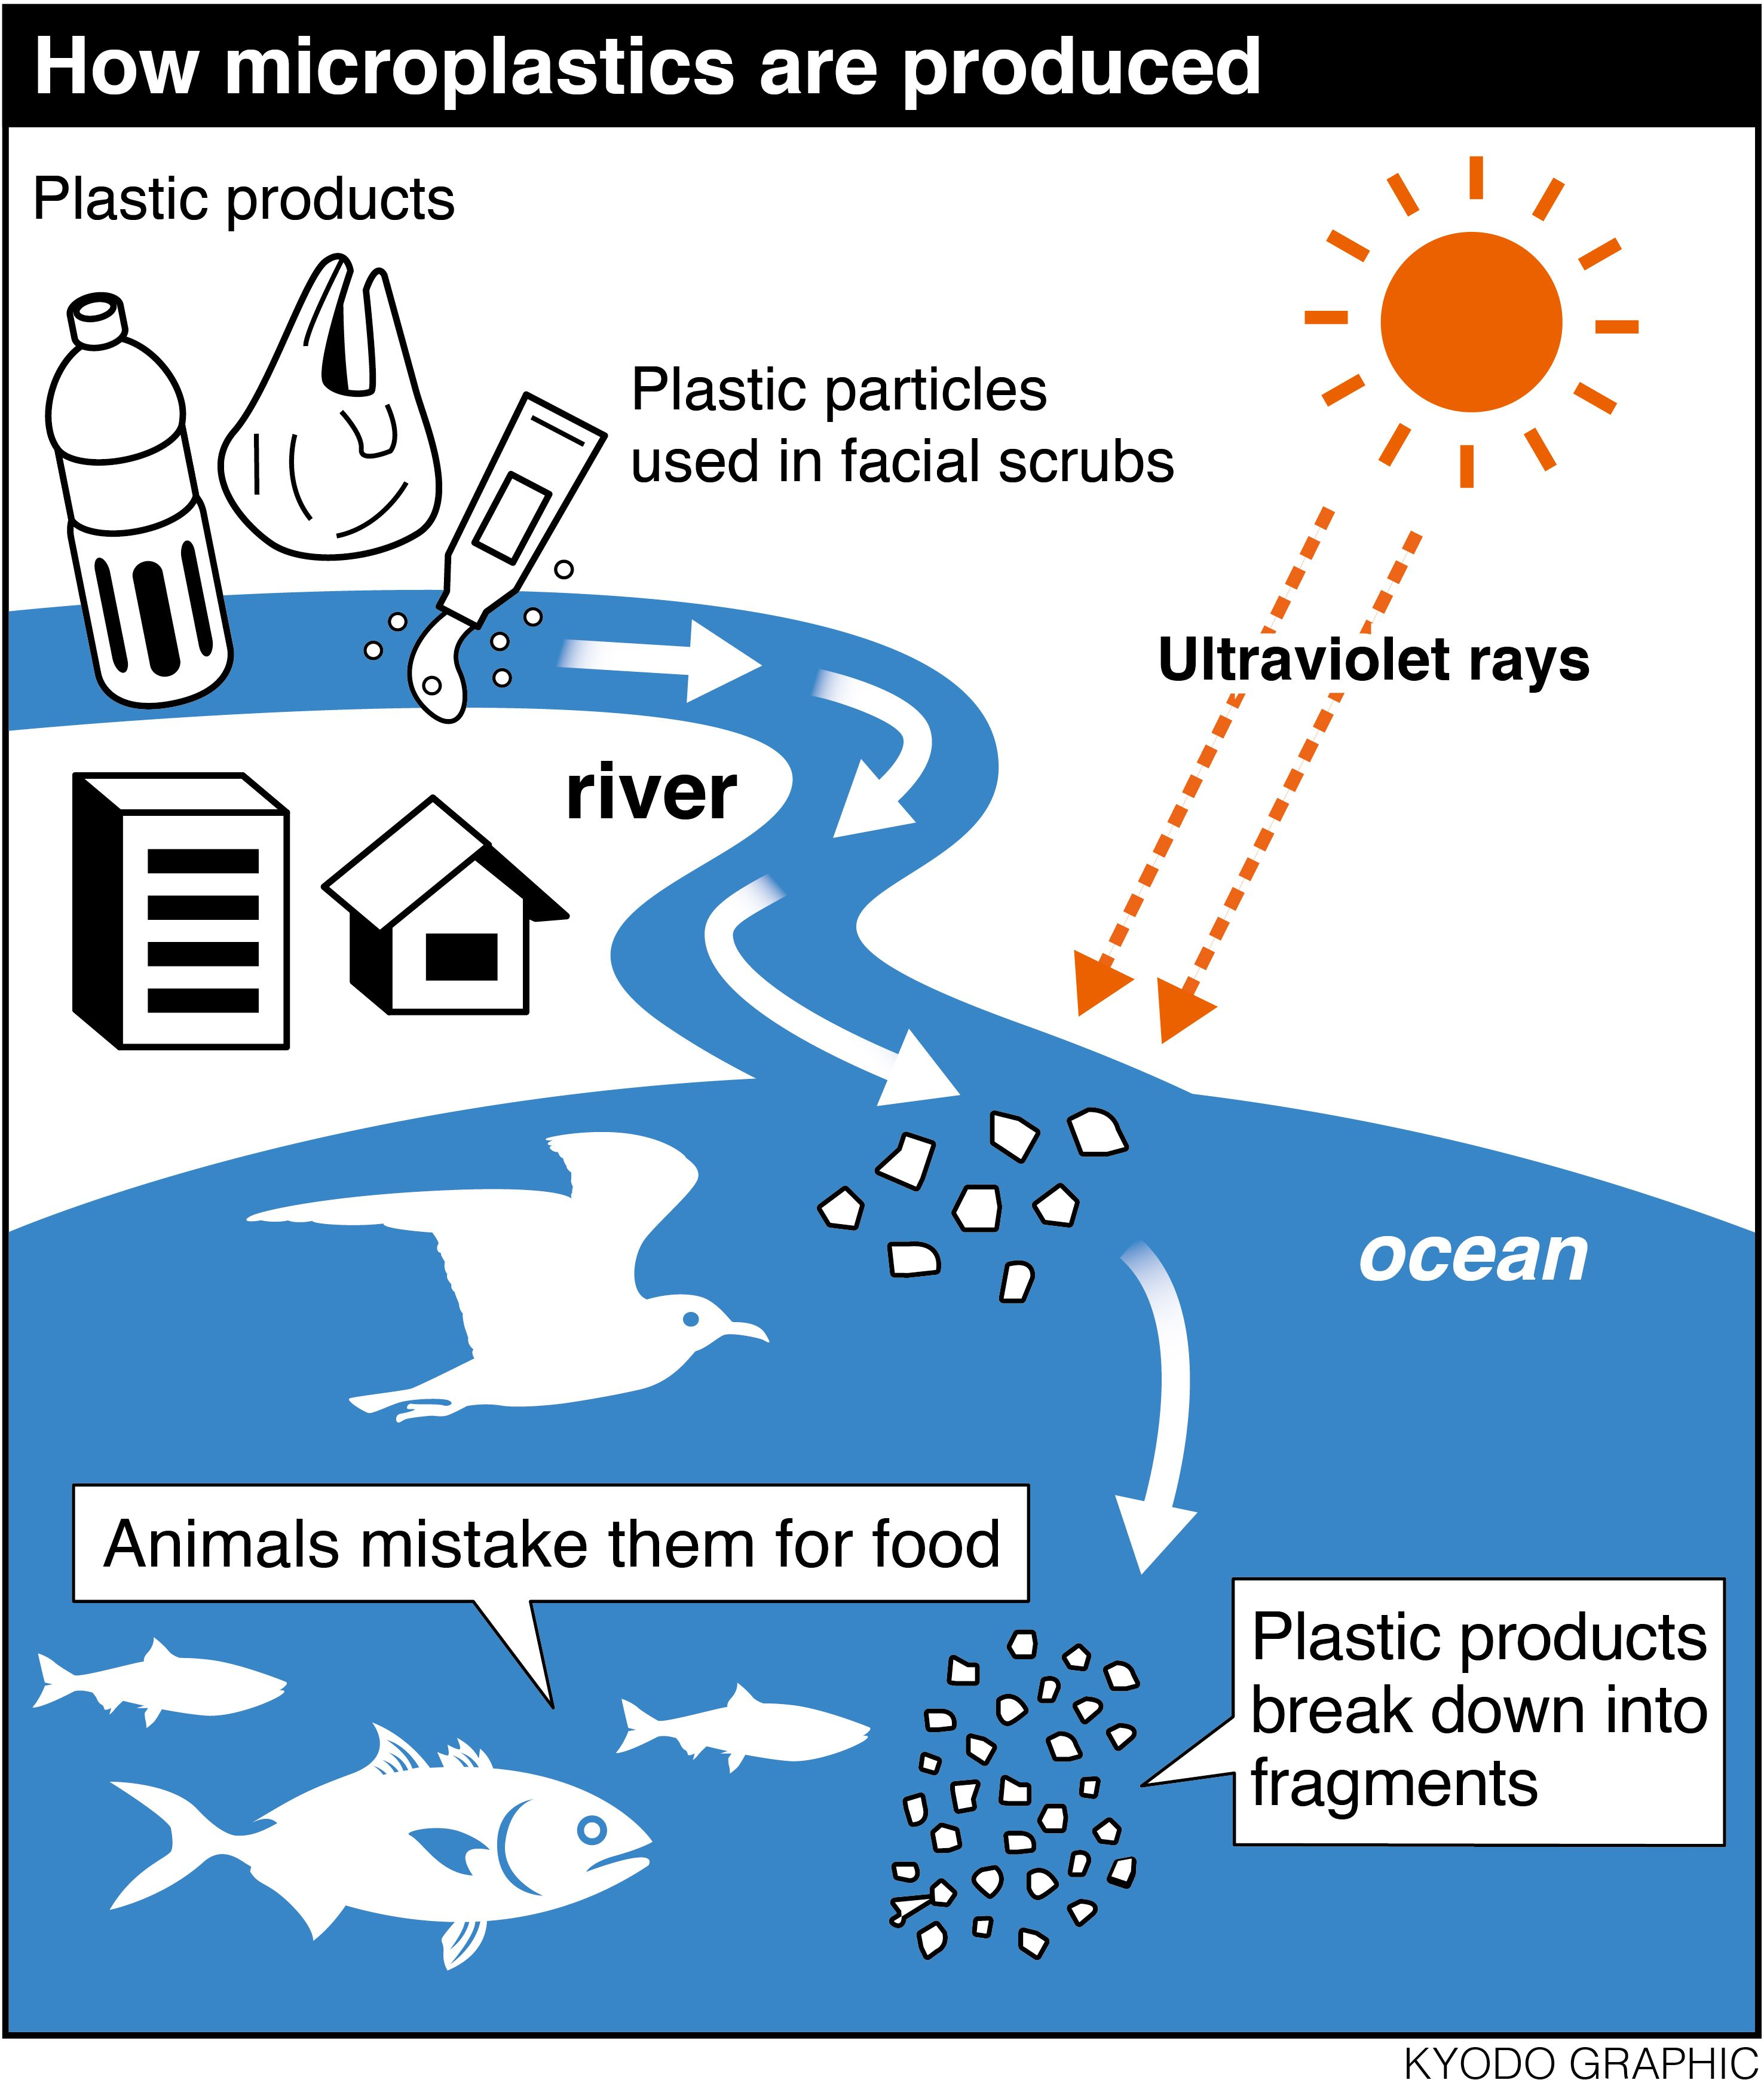 Plastic is part of the fabric of everyday life, from bags to bottles to synthetic clothing. In 2014, global production amounted to 311 million tons, up fro